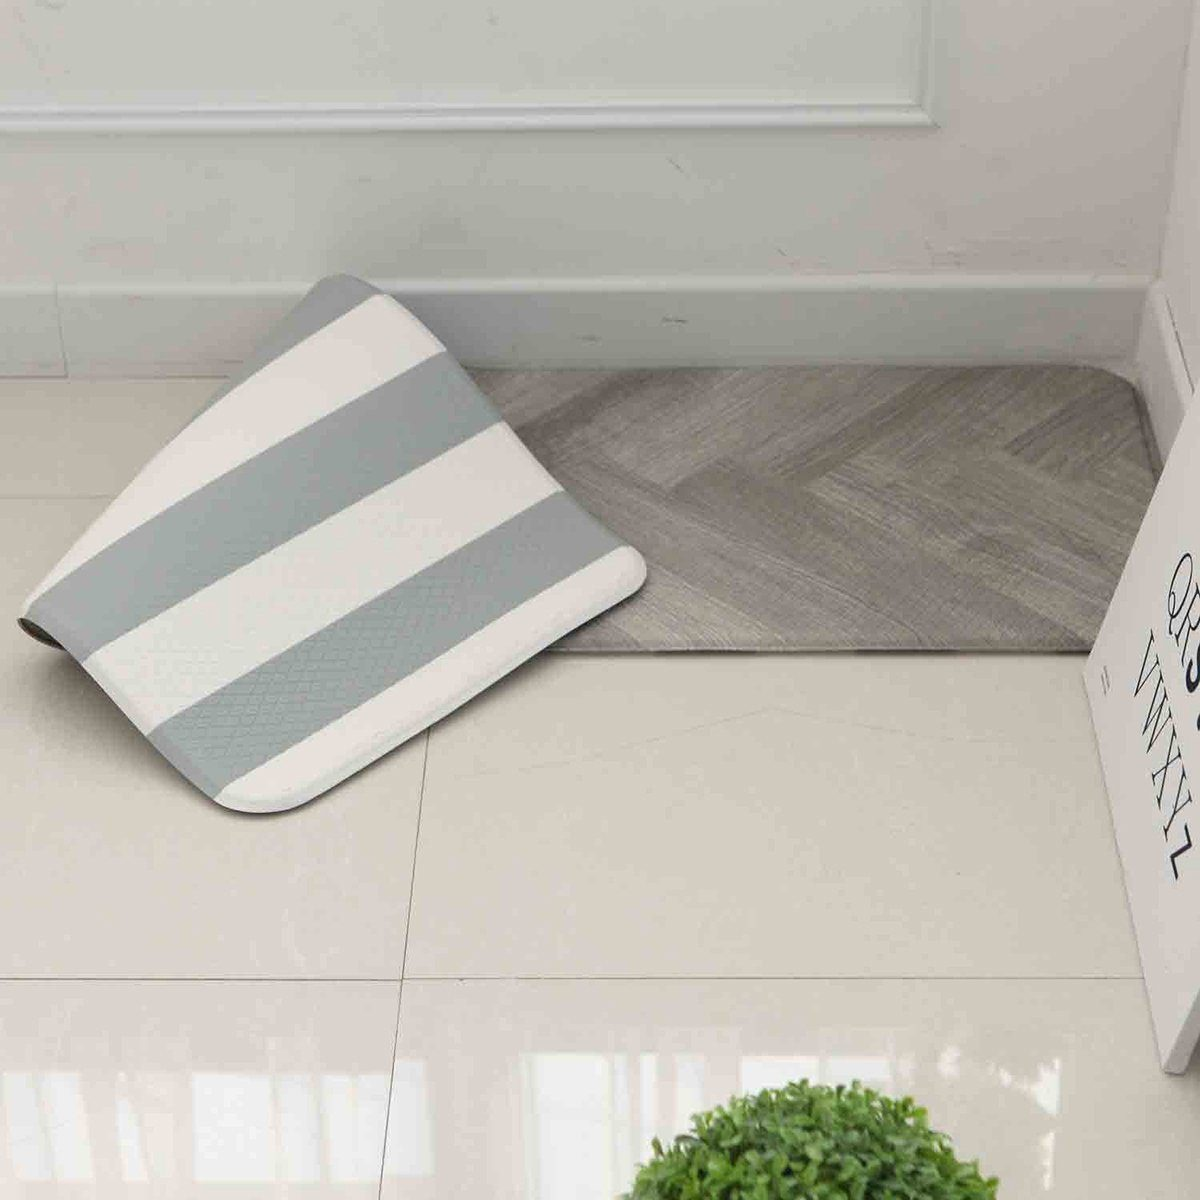 "Anti Fatigue Cushion Stylish Comfort Floor Foam Kitchen Mat, Office Mat, Waterproof, Easy to clean, Soft and Thick, Non Toxic, Reversible (Grey and Stripe, 17"" x 48"")"